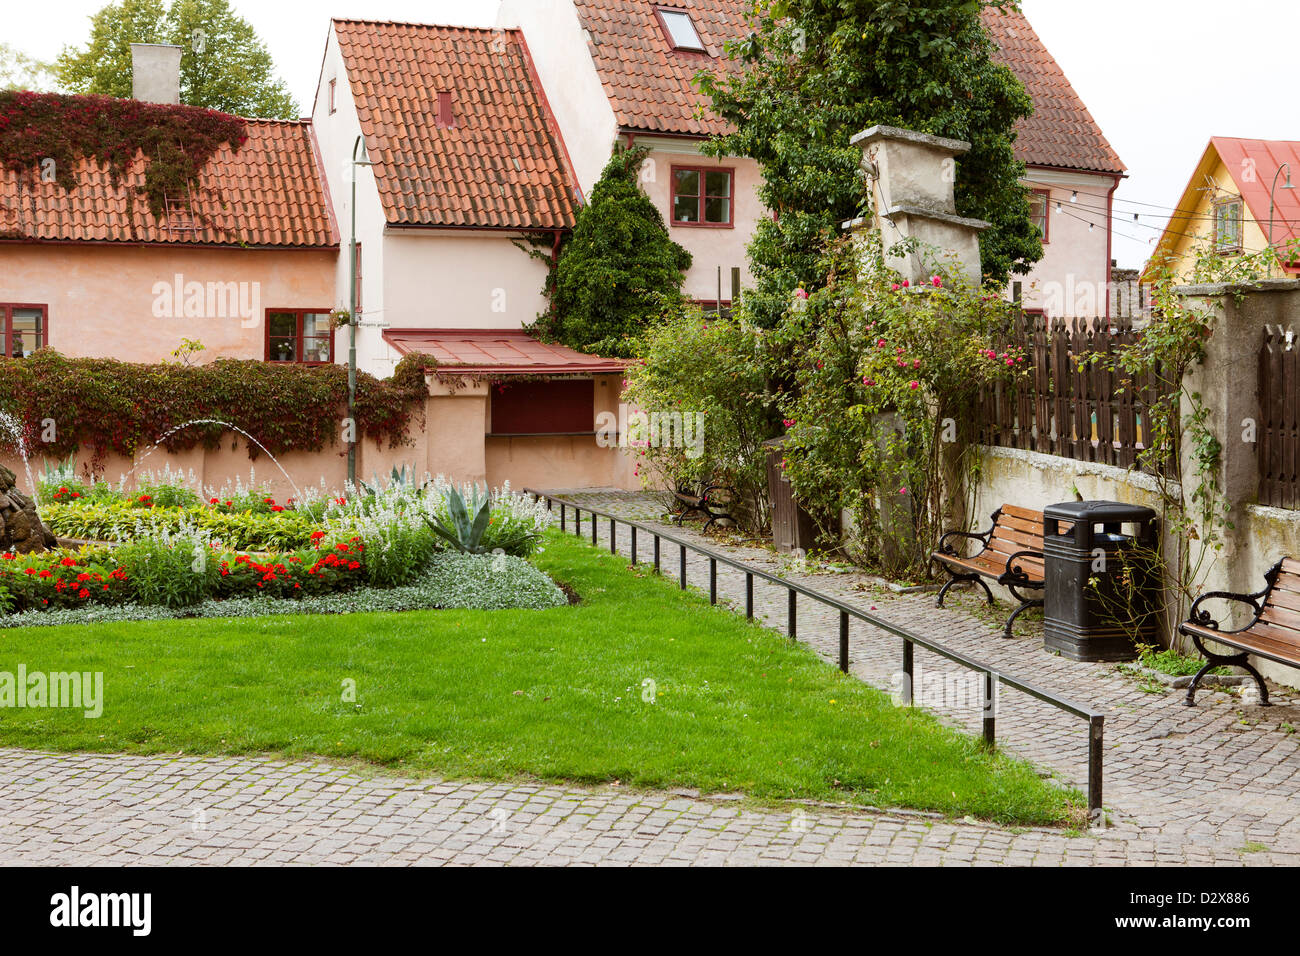 Small square in the old town of Visby, Gotland. Packhusplan. - Stock Image